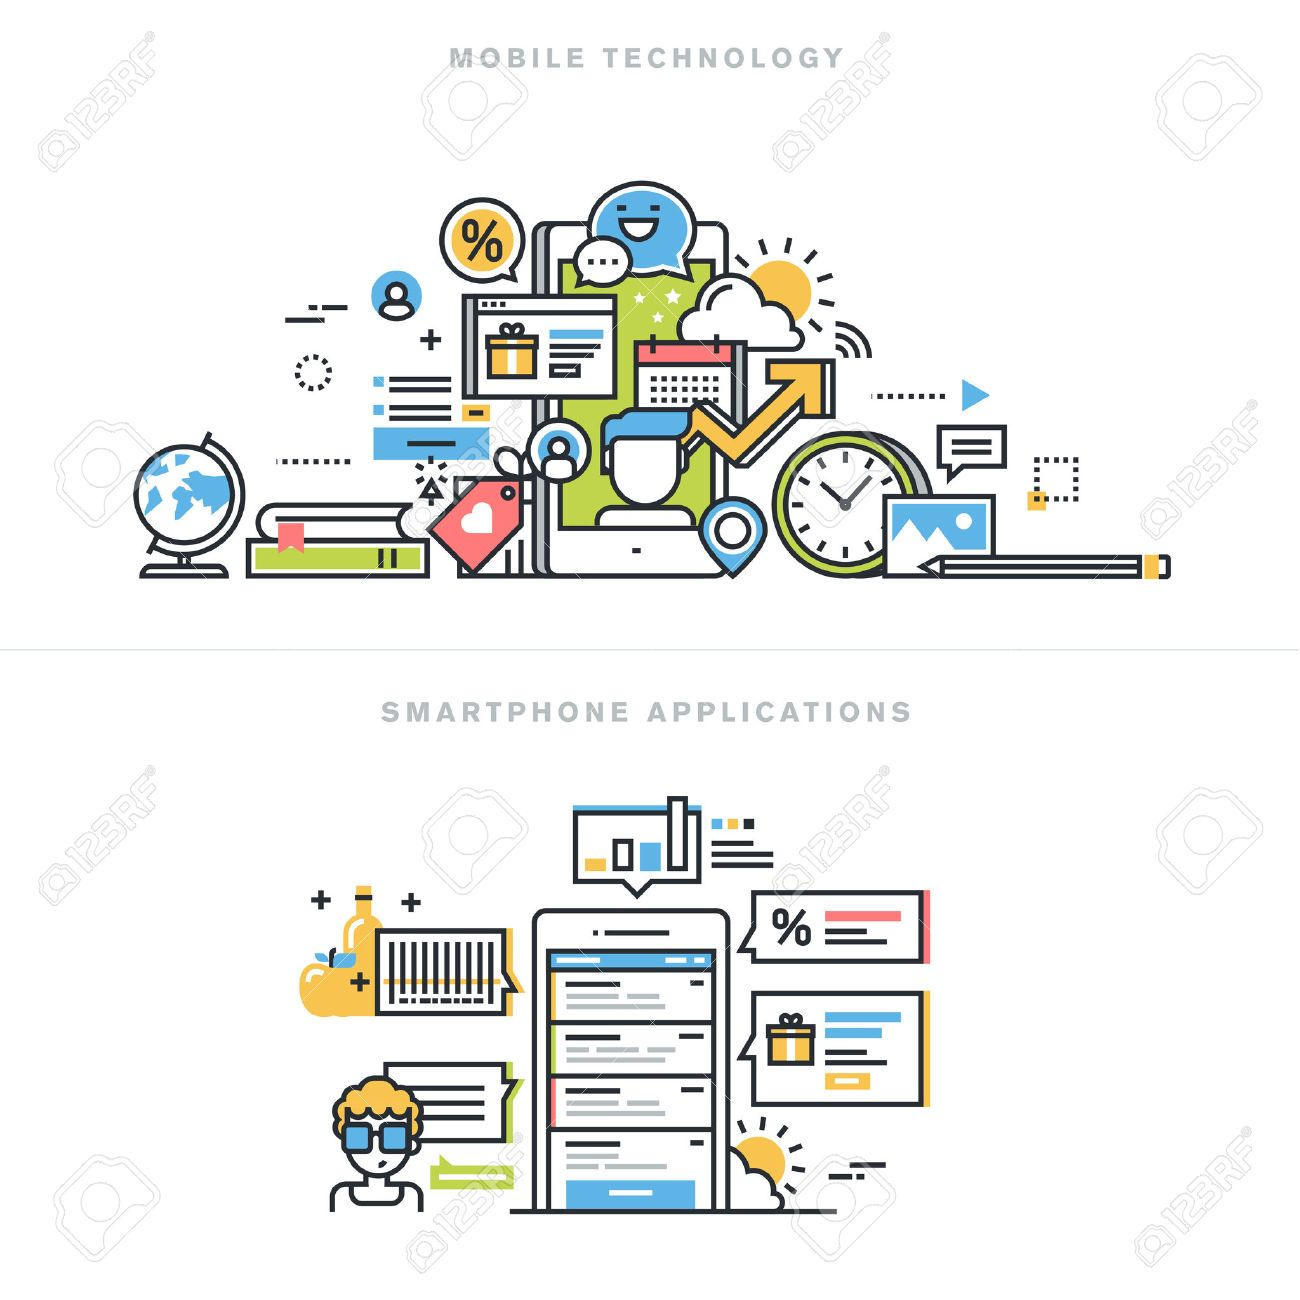 Flat line design vector illustration concepts for mobile technology, smartphone application, mobile website and app design and development, mobile phone services, for website banner and landing page. Stock Vector - 47546793